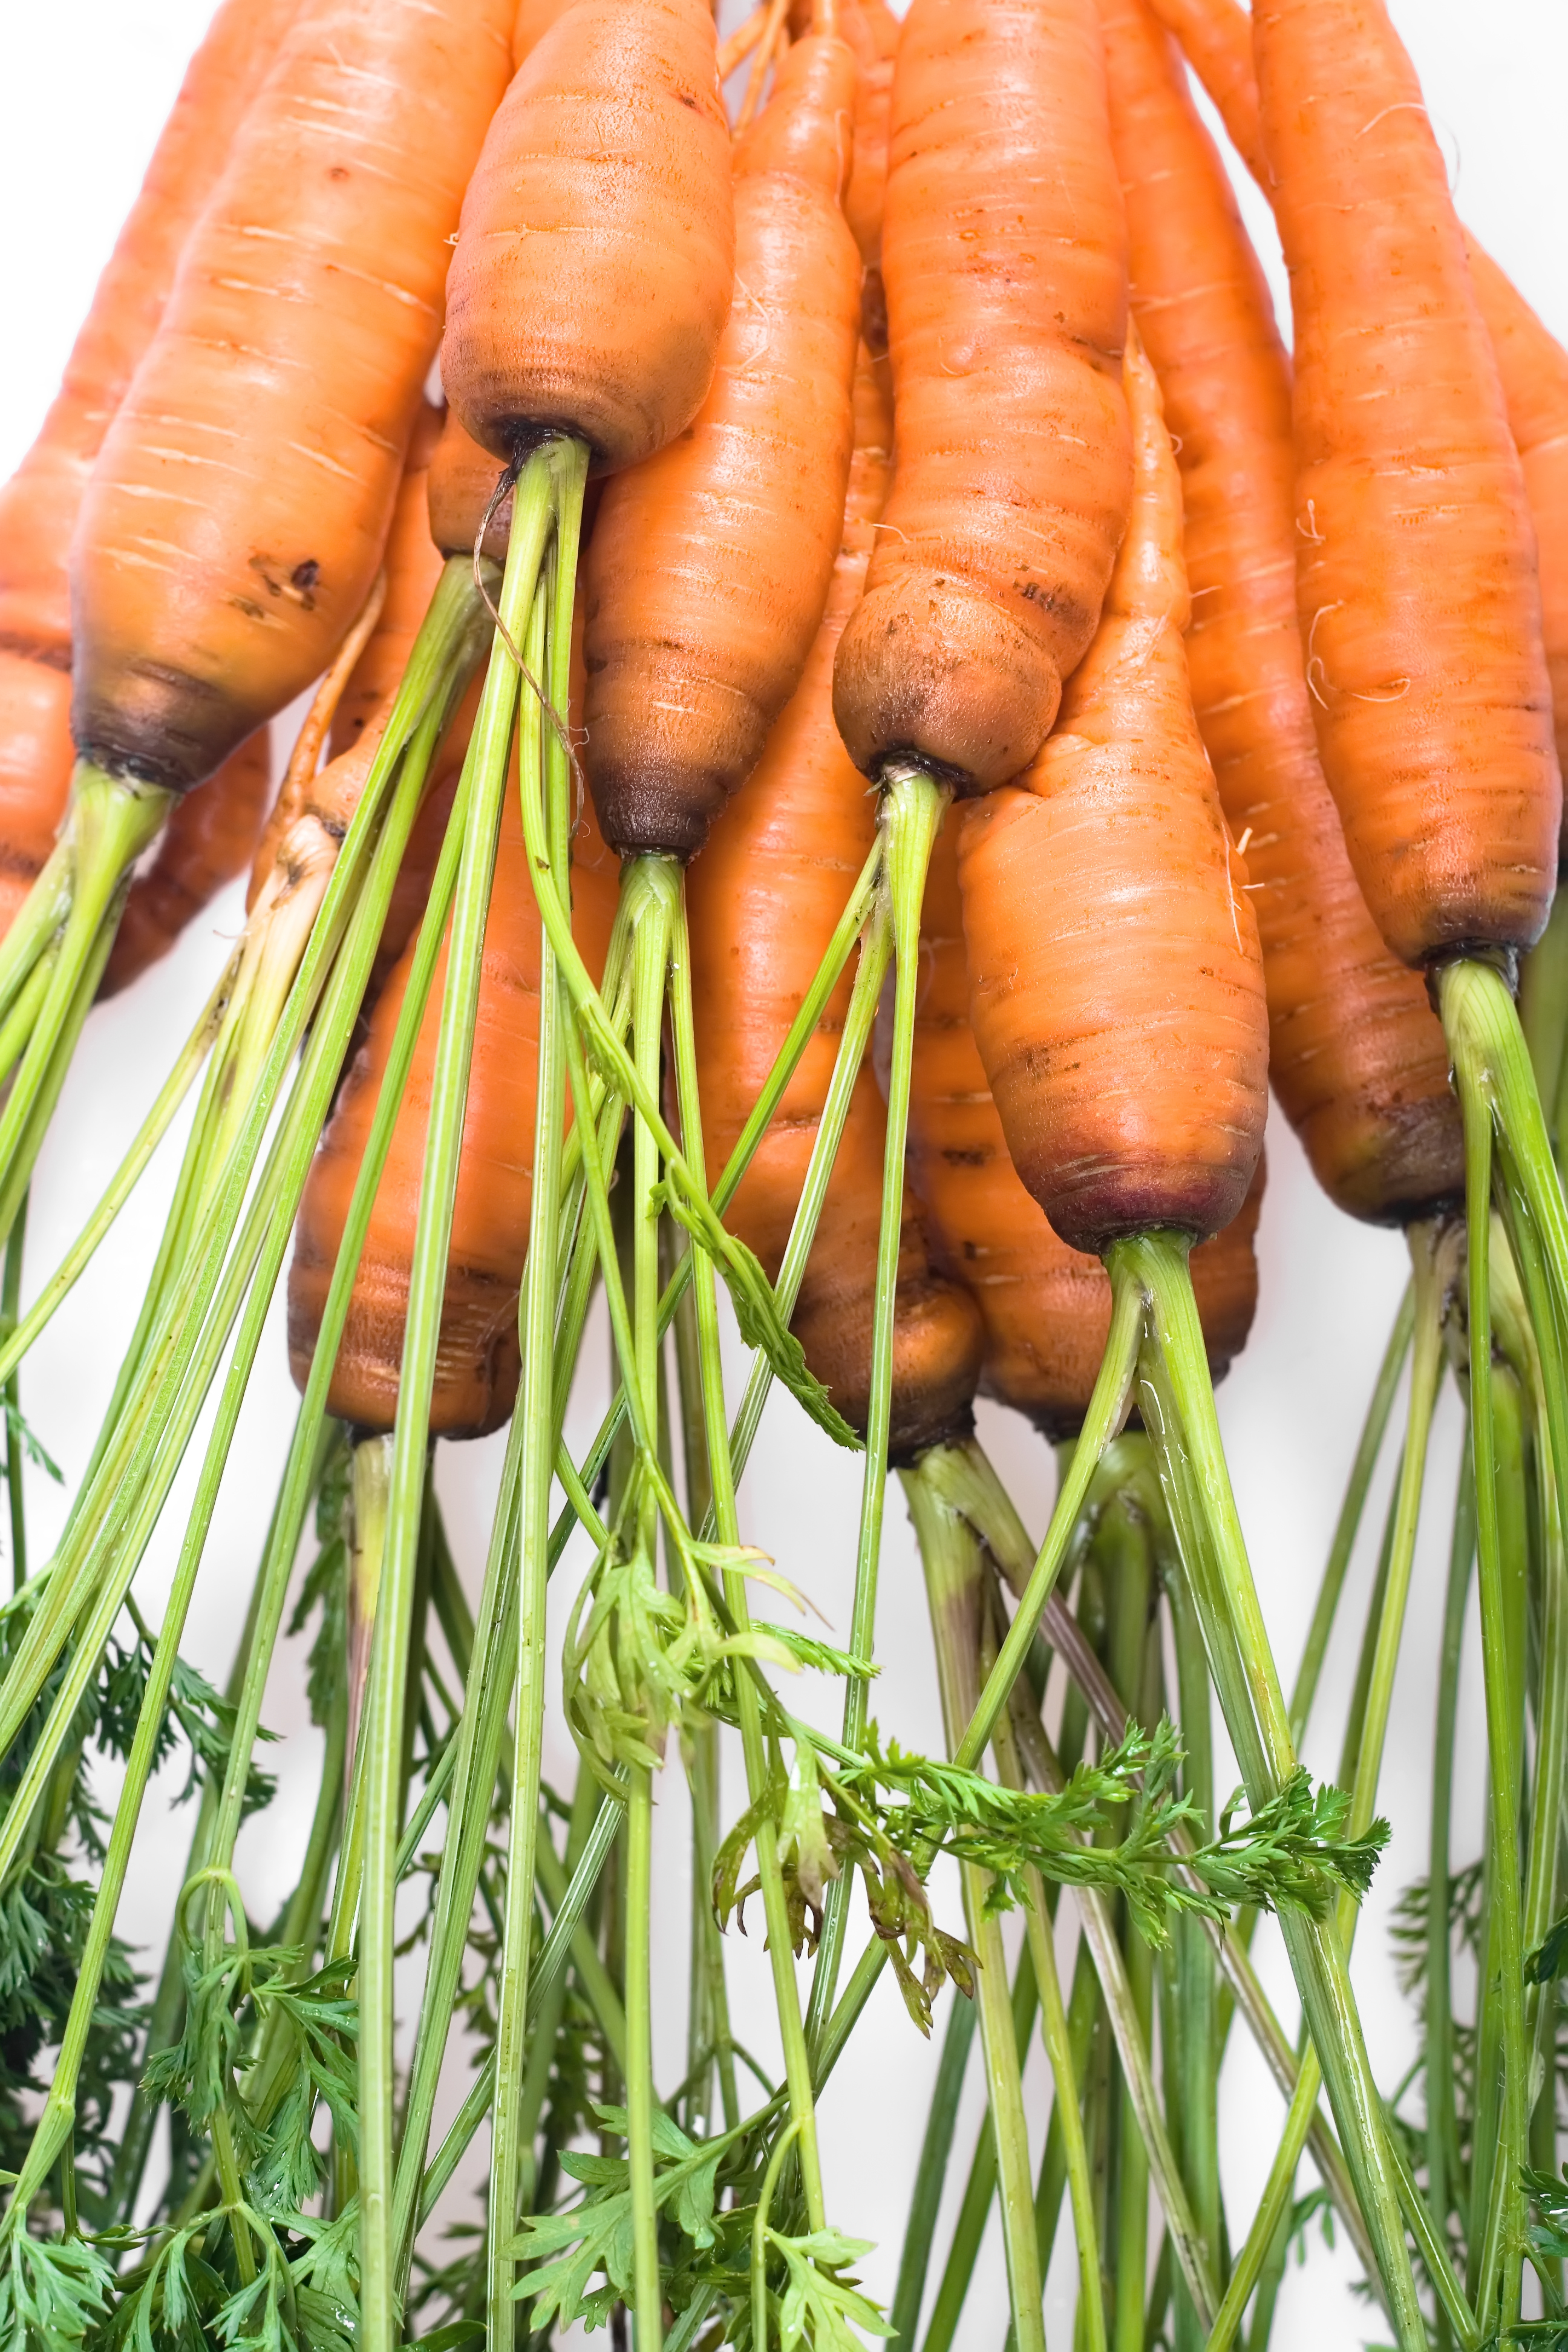 carrot, Isolated, Vegetarian, Vegetable, Salad, HQ Photo